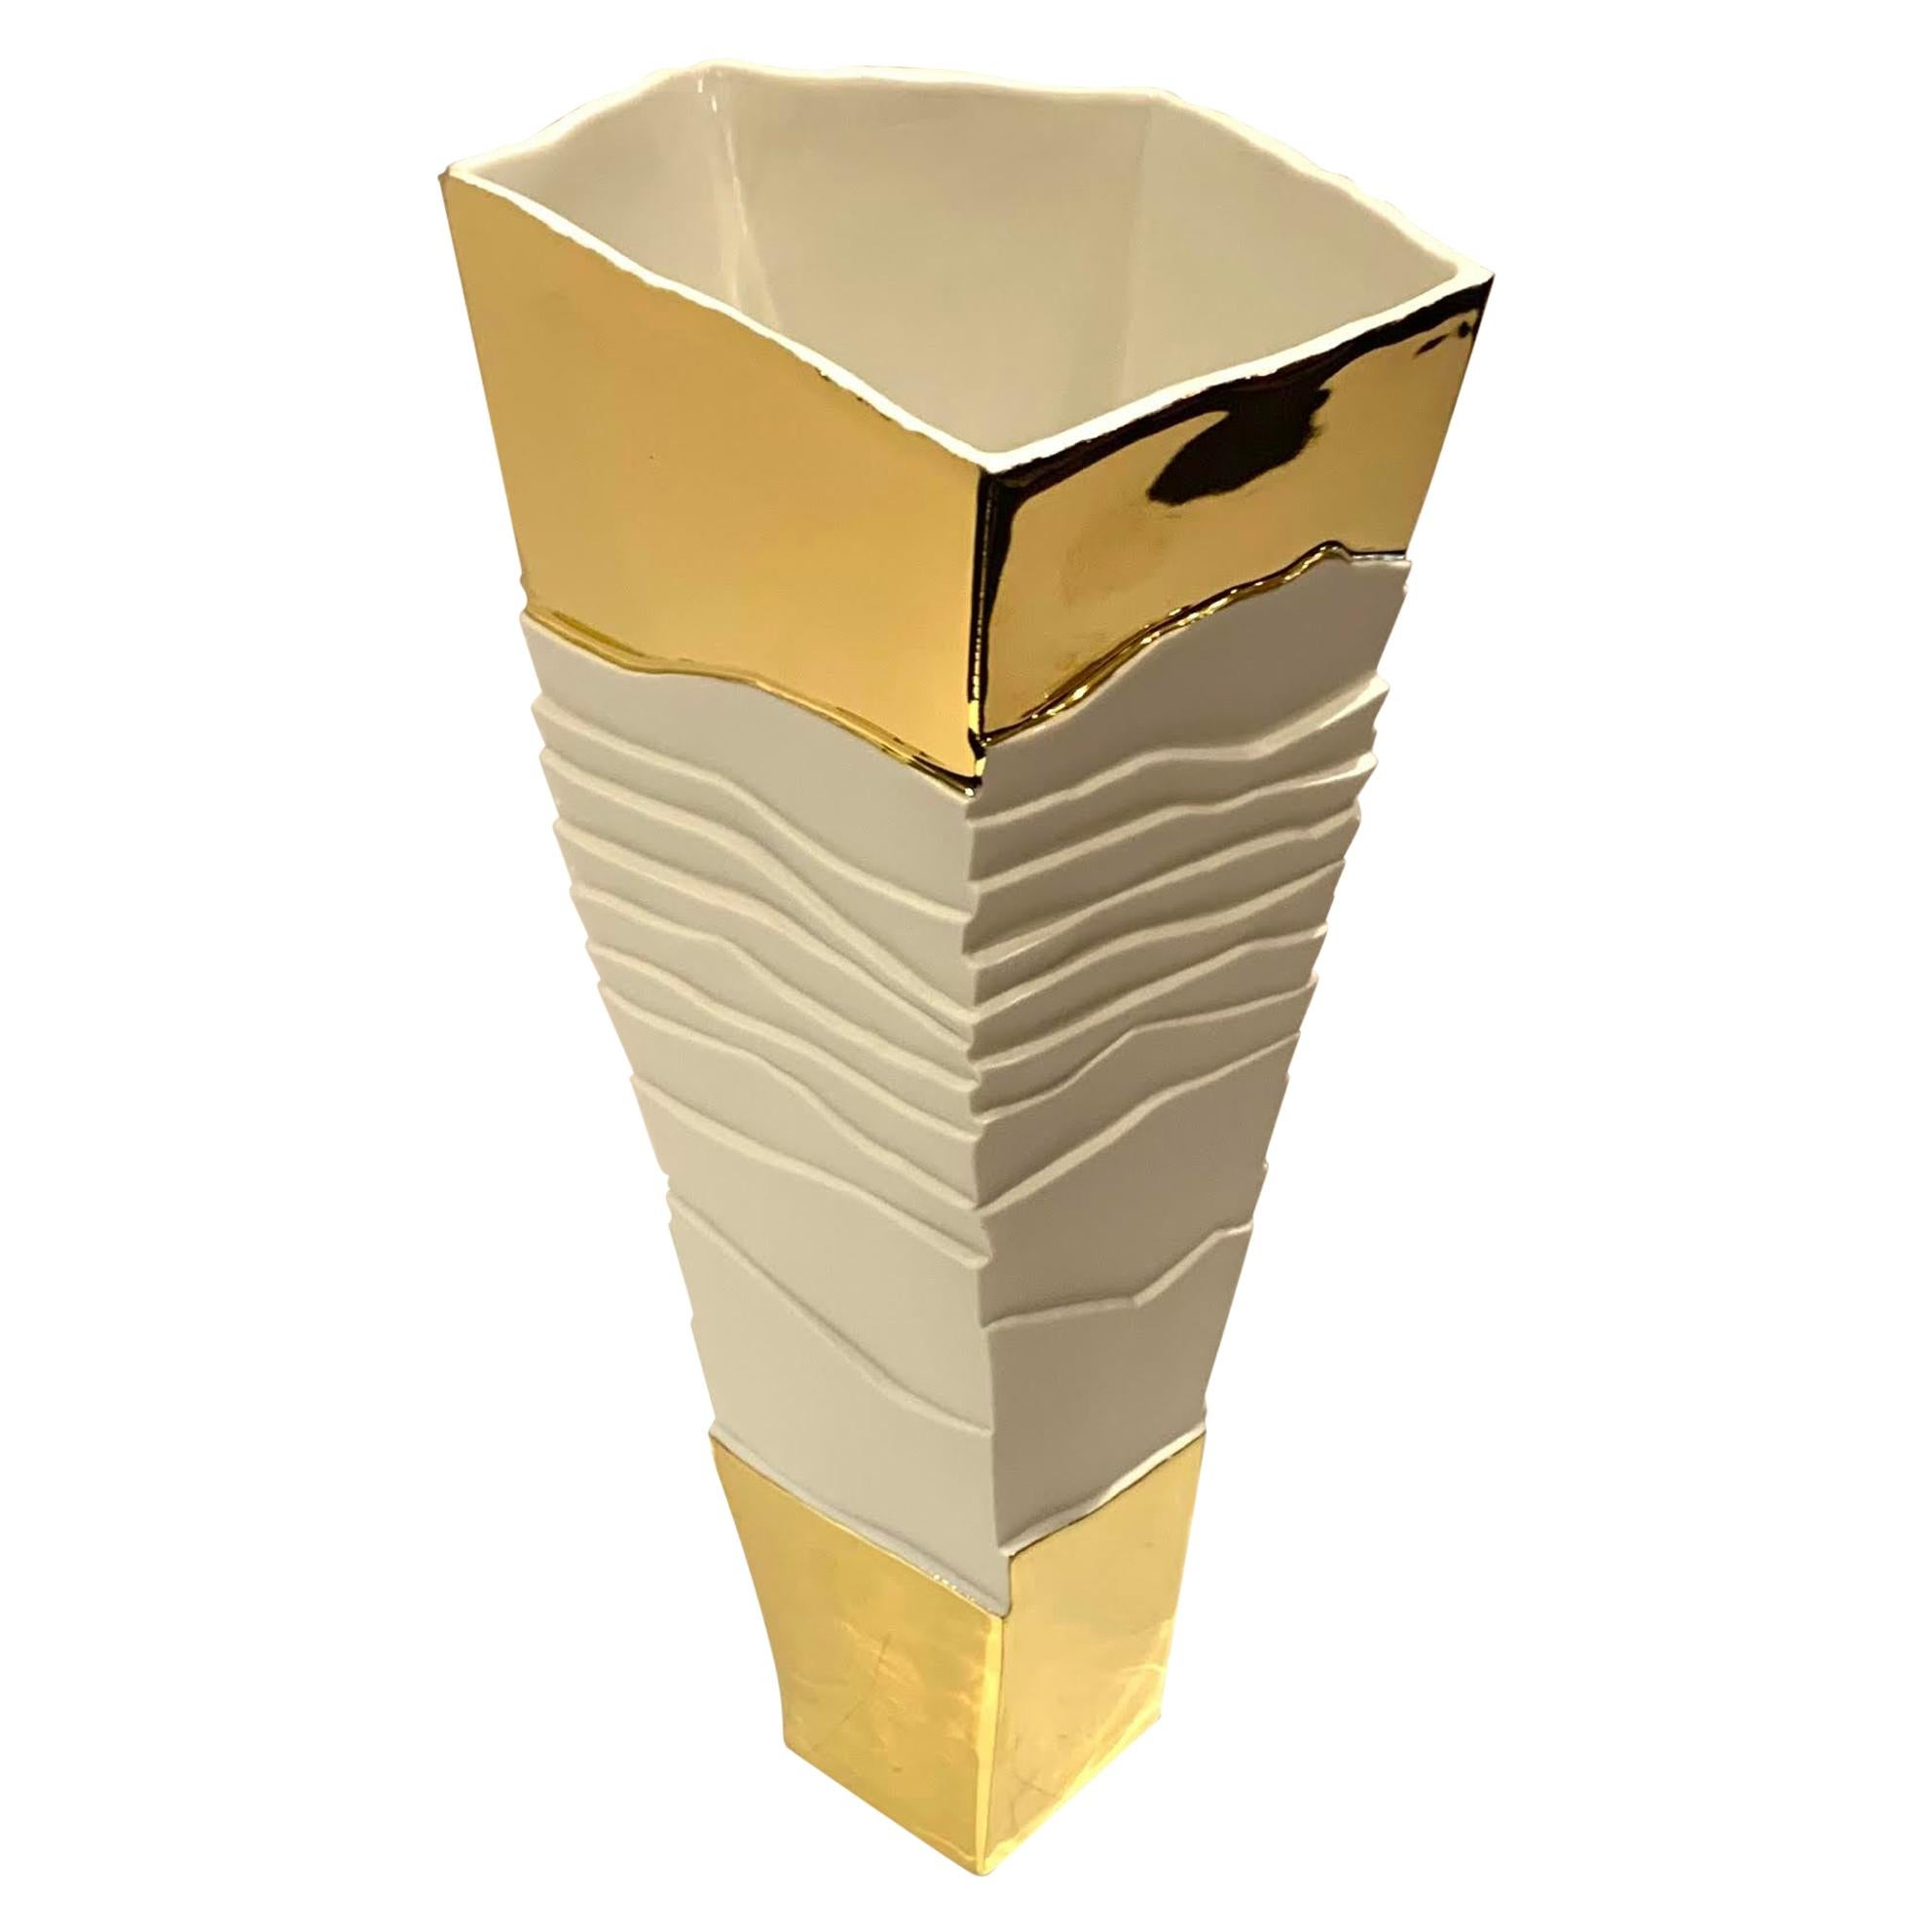 White with 22K Gold Tall Cubist Design Porcelain Vase, Italy, Contemporary